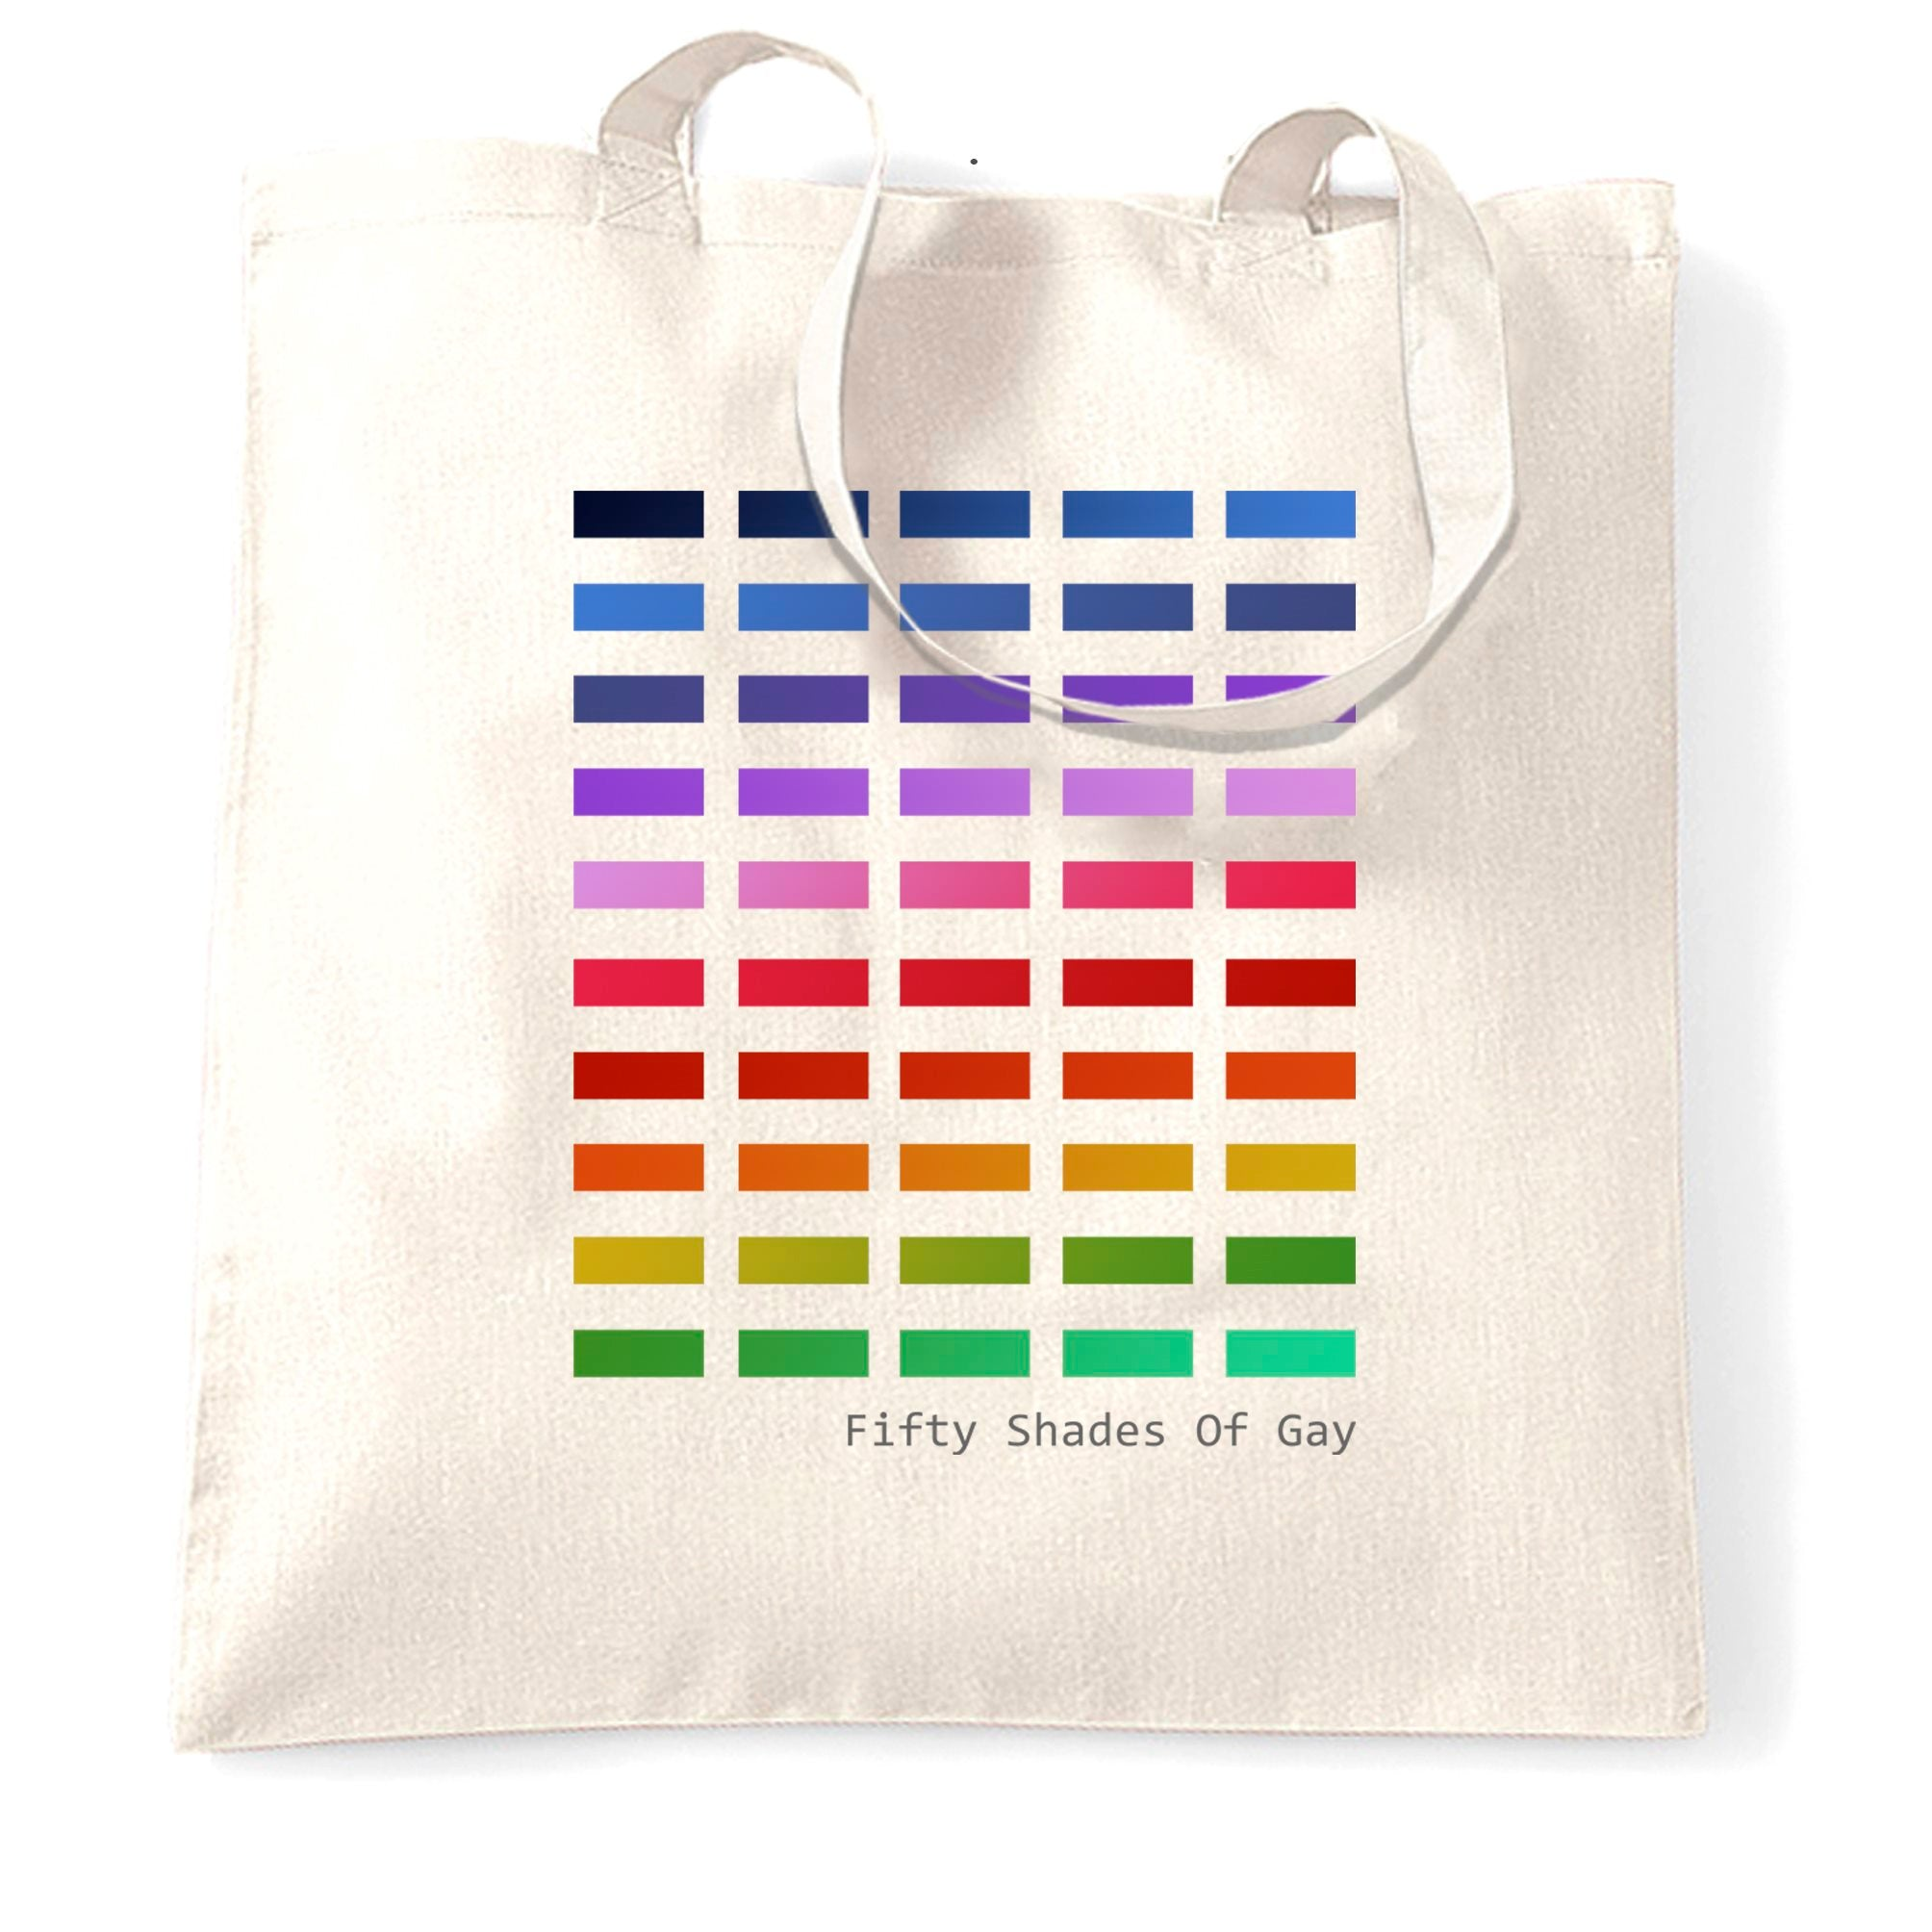 50 Shades Of Gay Tote Bag Rainbow LGBT+ Pride